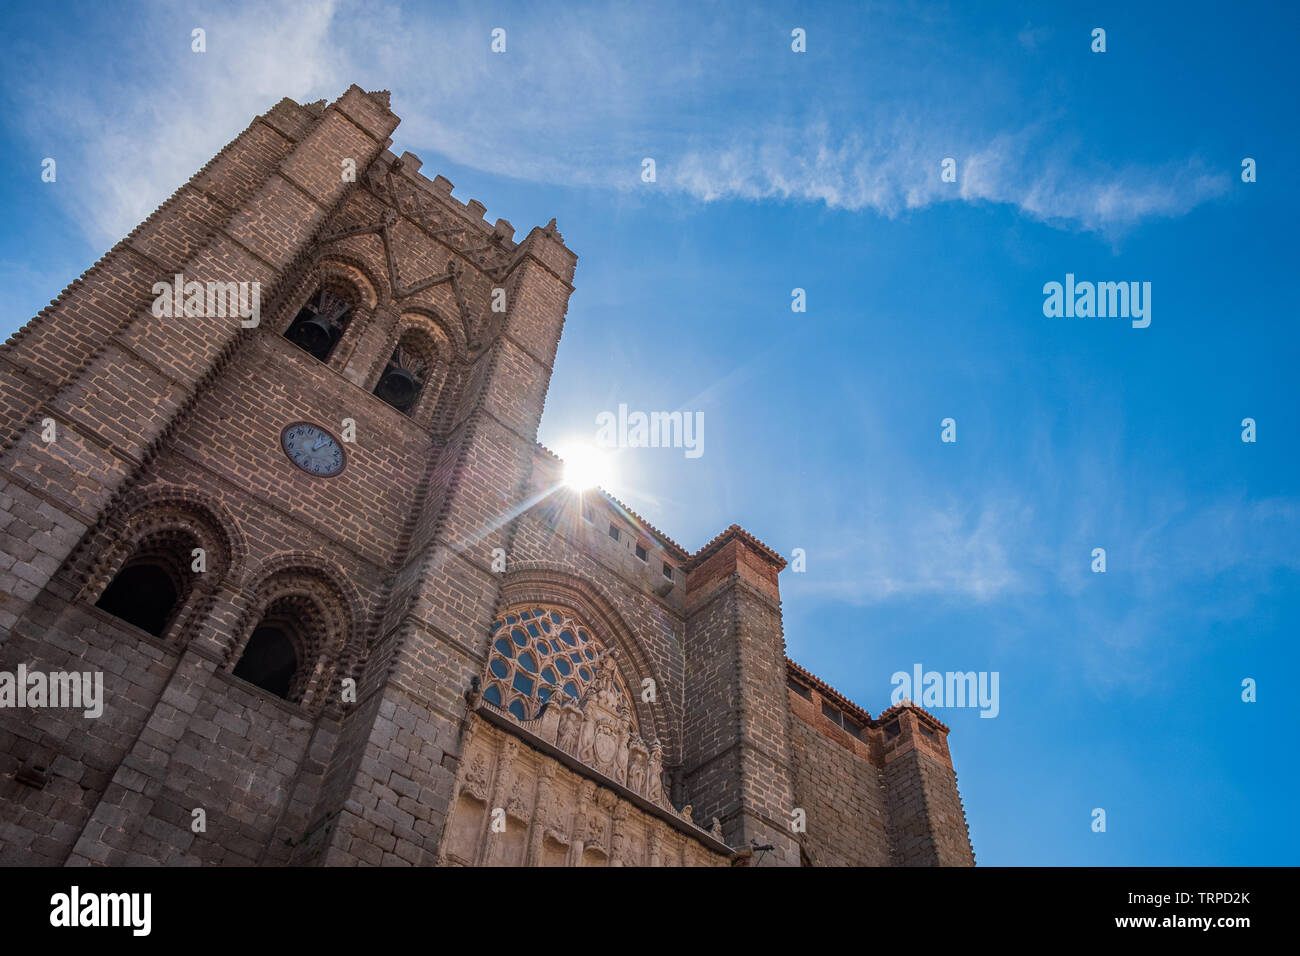 Main view of Cathedral of Avila, Spain, with sun and clouds in a blue sky - Stock Image